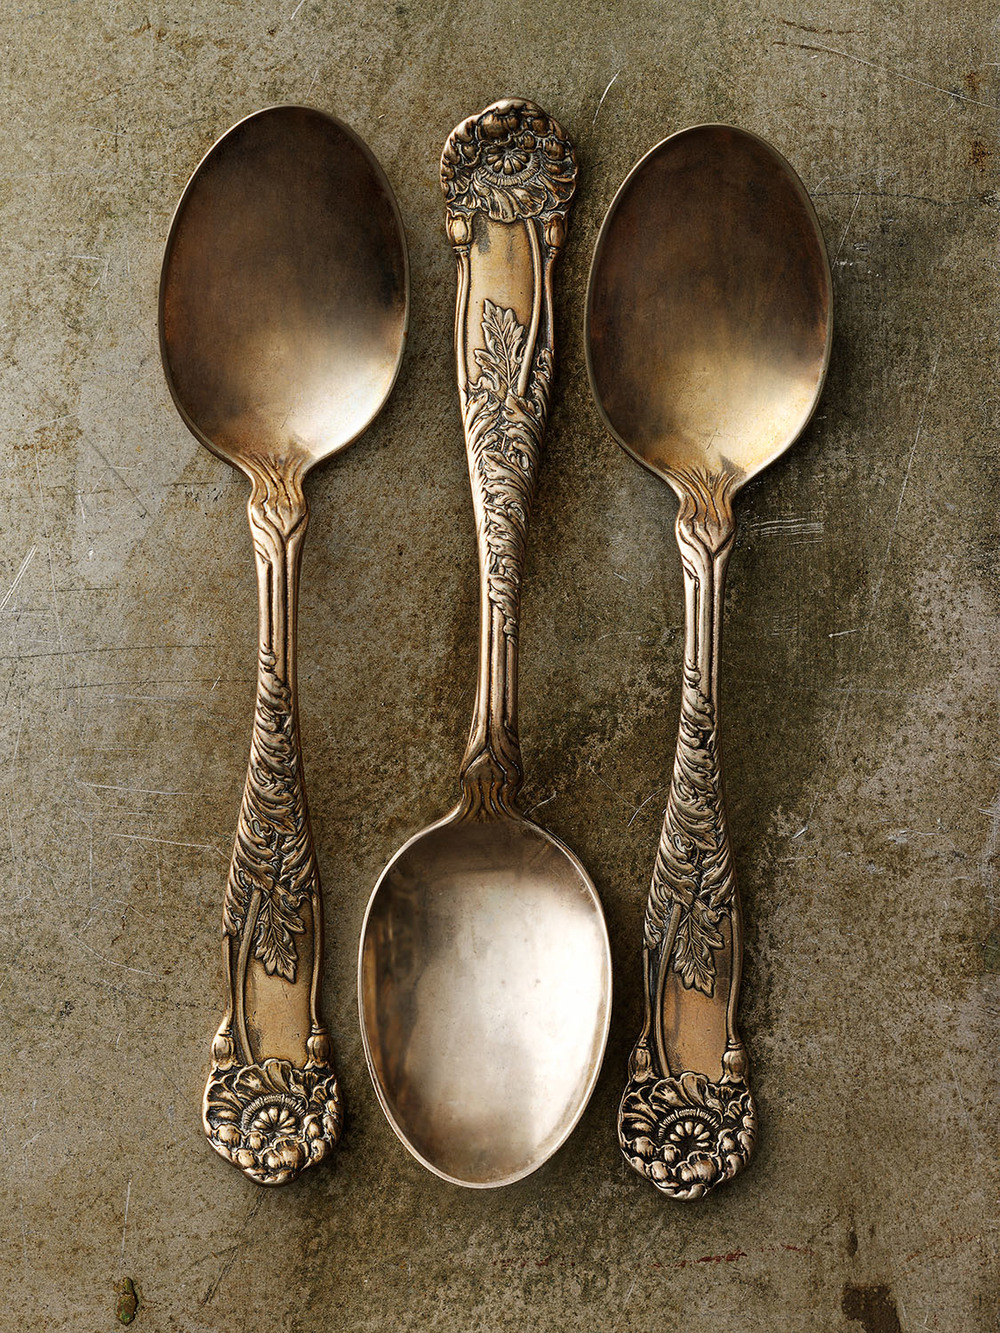 #21 Three Tarnished Spoons